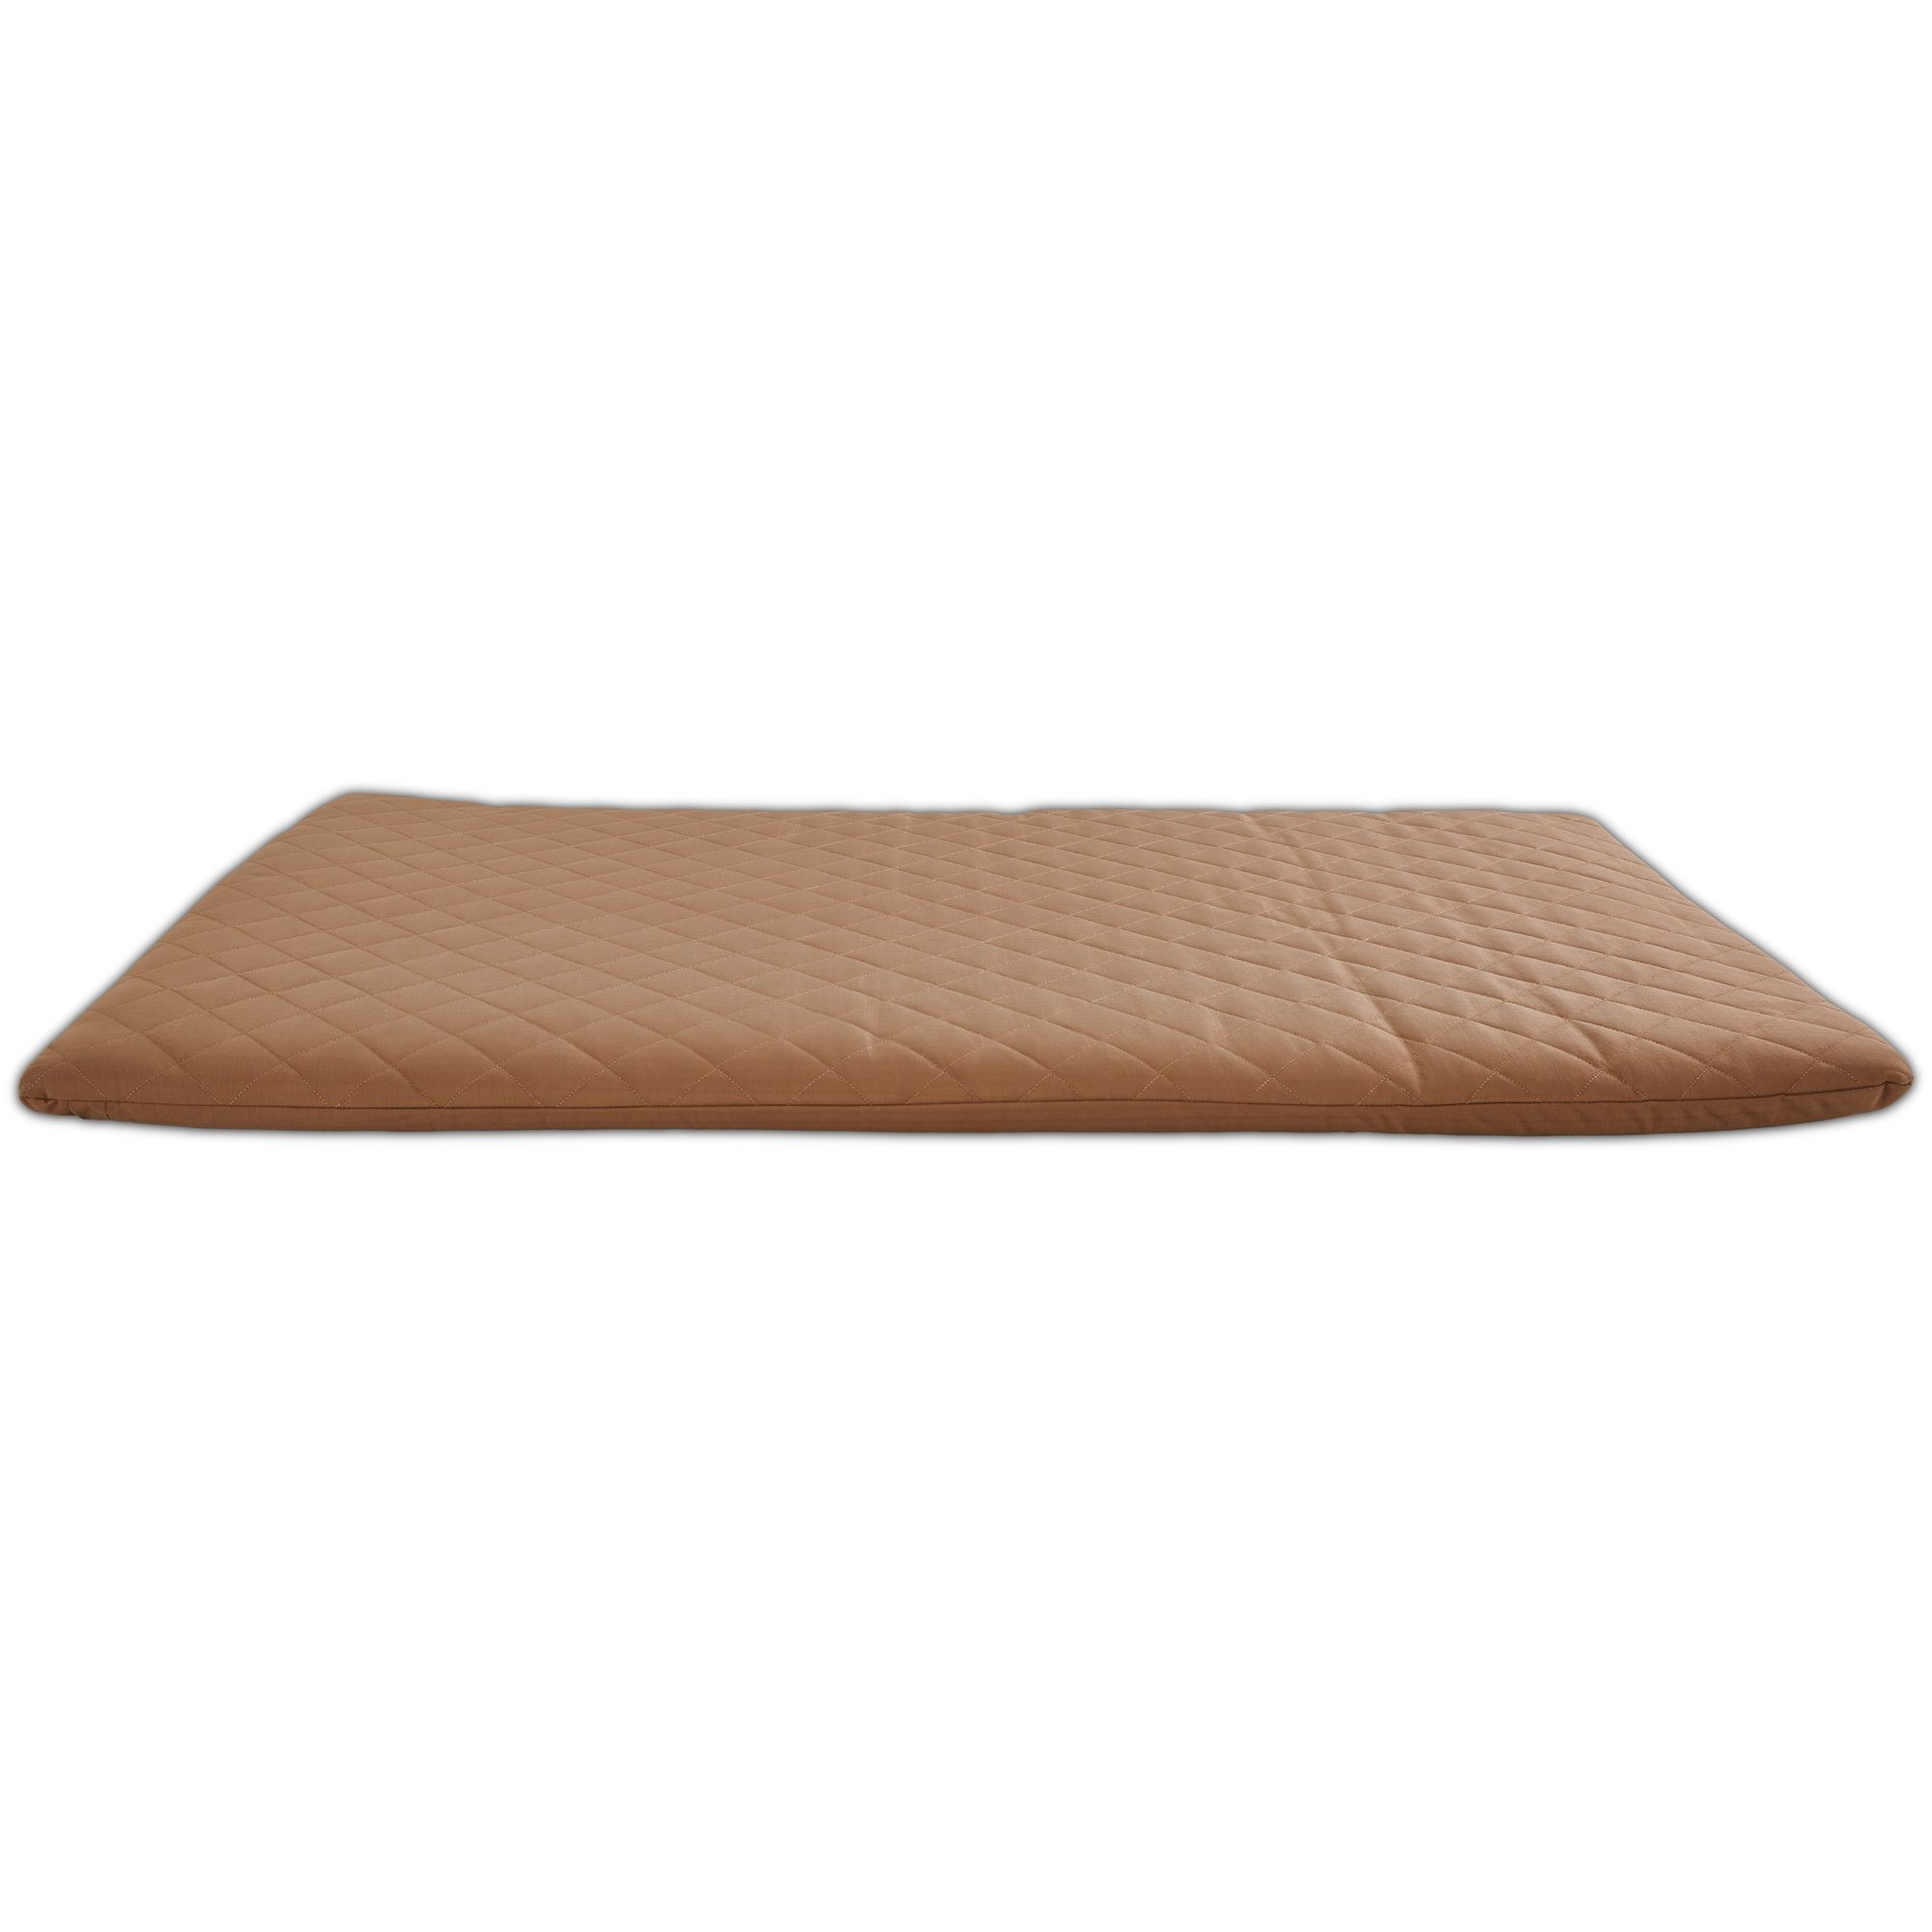 You & Me Tan Durable Dog Mat, 46'' L x 28'' W, XX-Large by You&Me (Image #1)